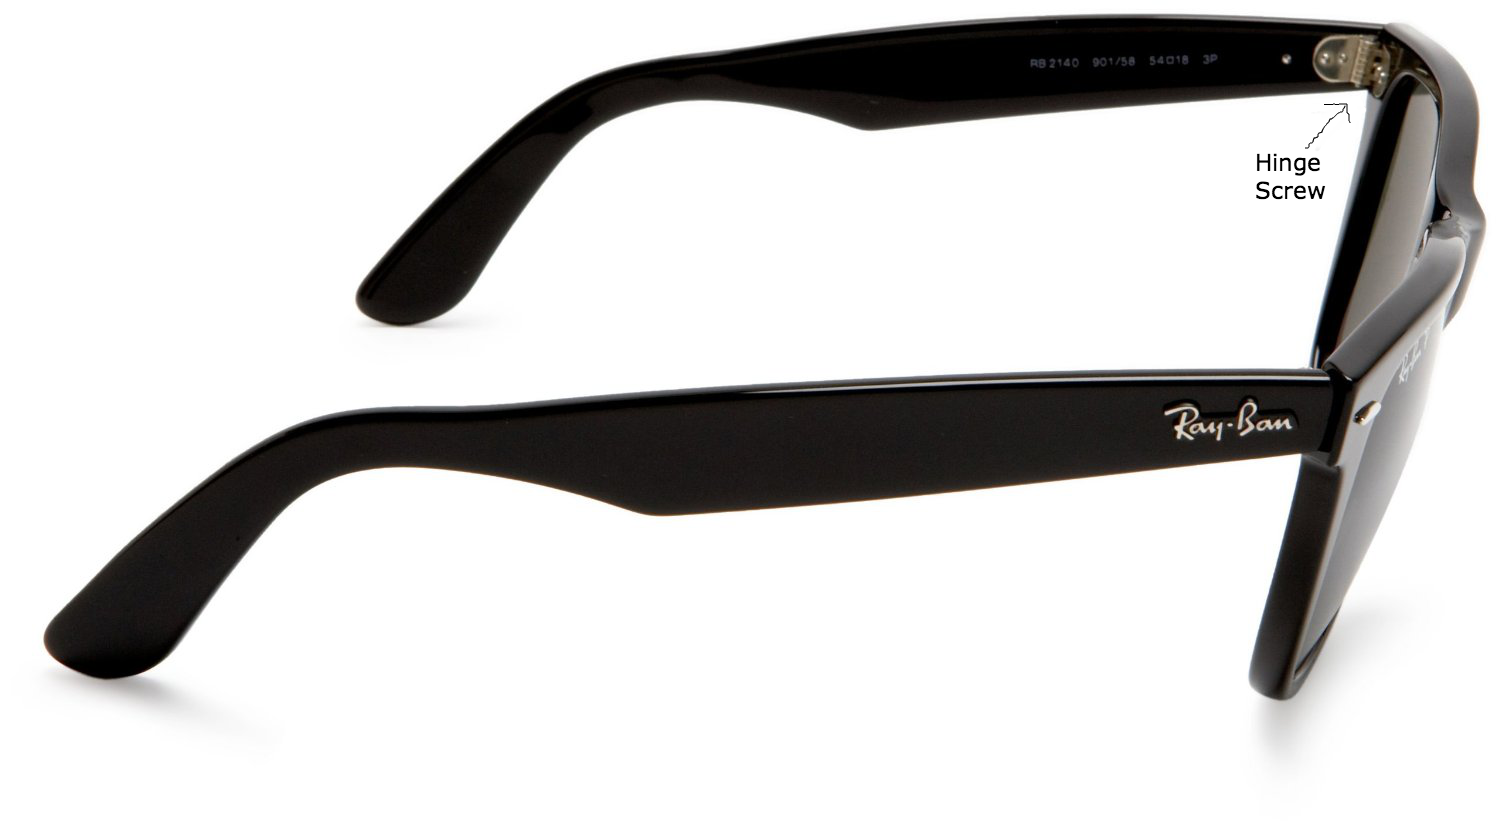 8f08515151 Where to Buy Ray Ban Replacement Parts